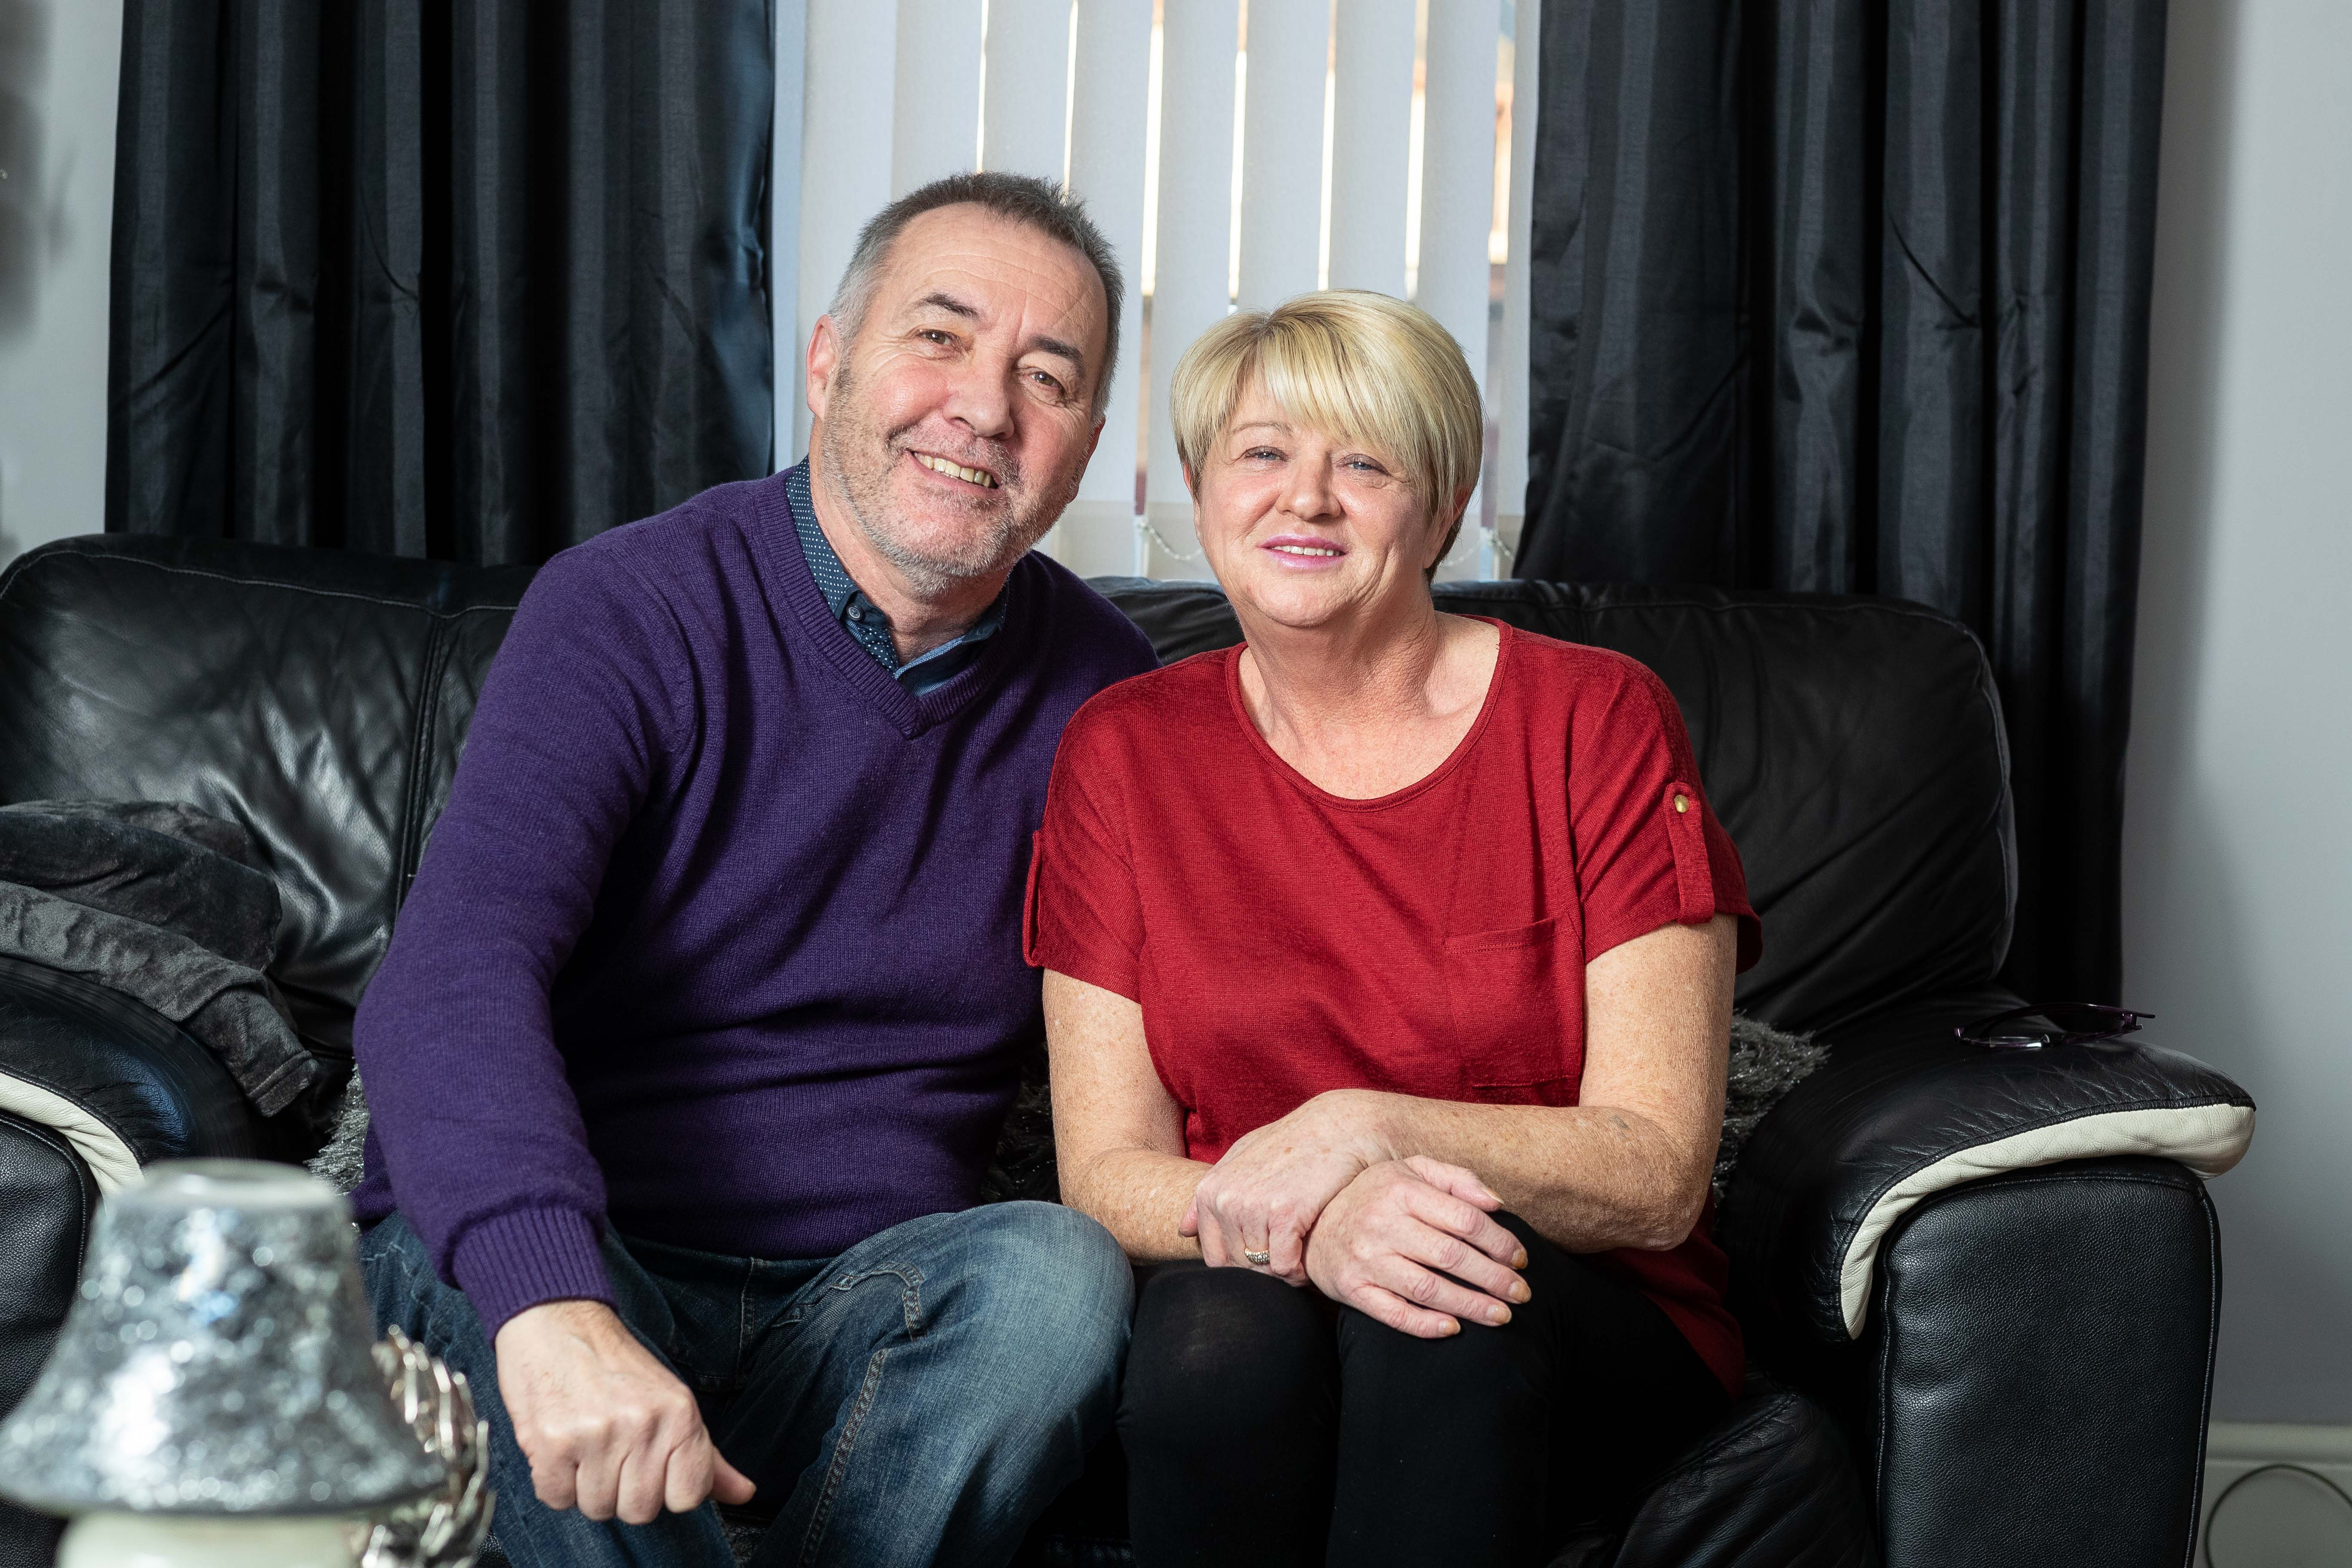 Sandra Murray's brother in law Dave Nelson, 63, is taking part in Bowel Cancer UK's 'Decembeard' fundraising campaign to raise awareness and funds. (Derek Ironside).